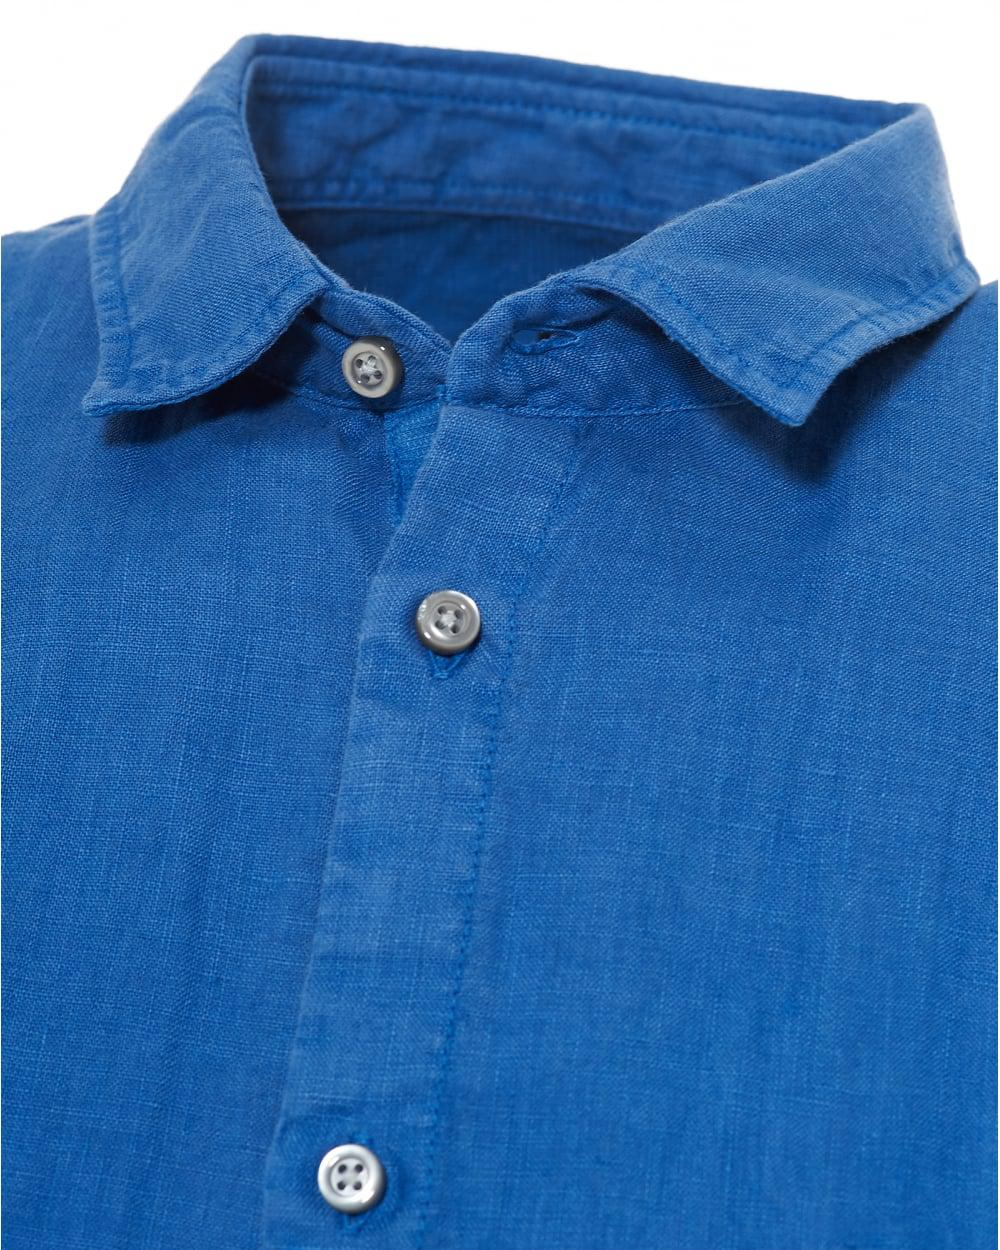 d4a8bbb5 Royal Blue Linen Shirts – EDGE Engineering and Consulting Limited